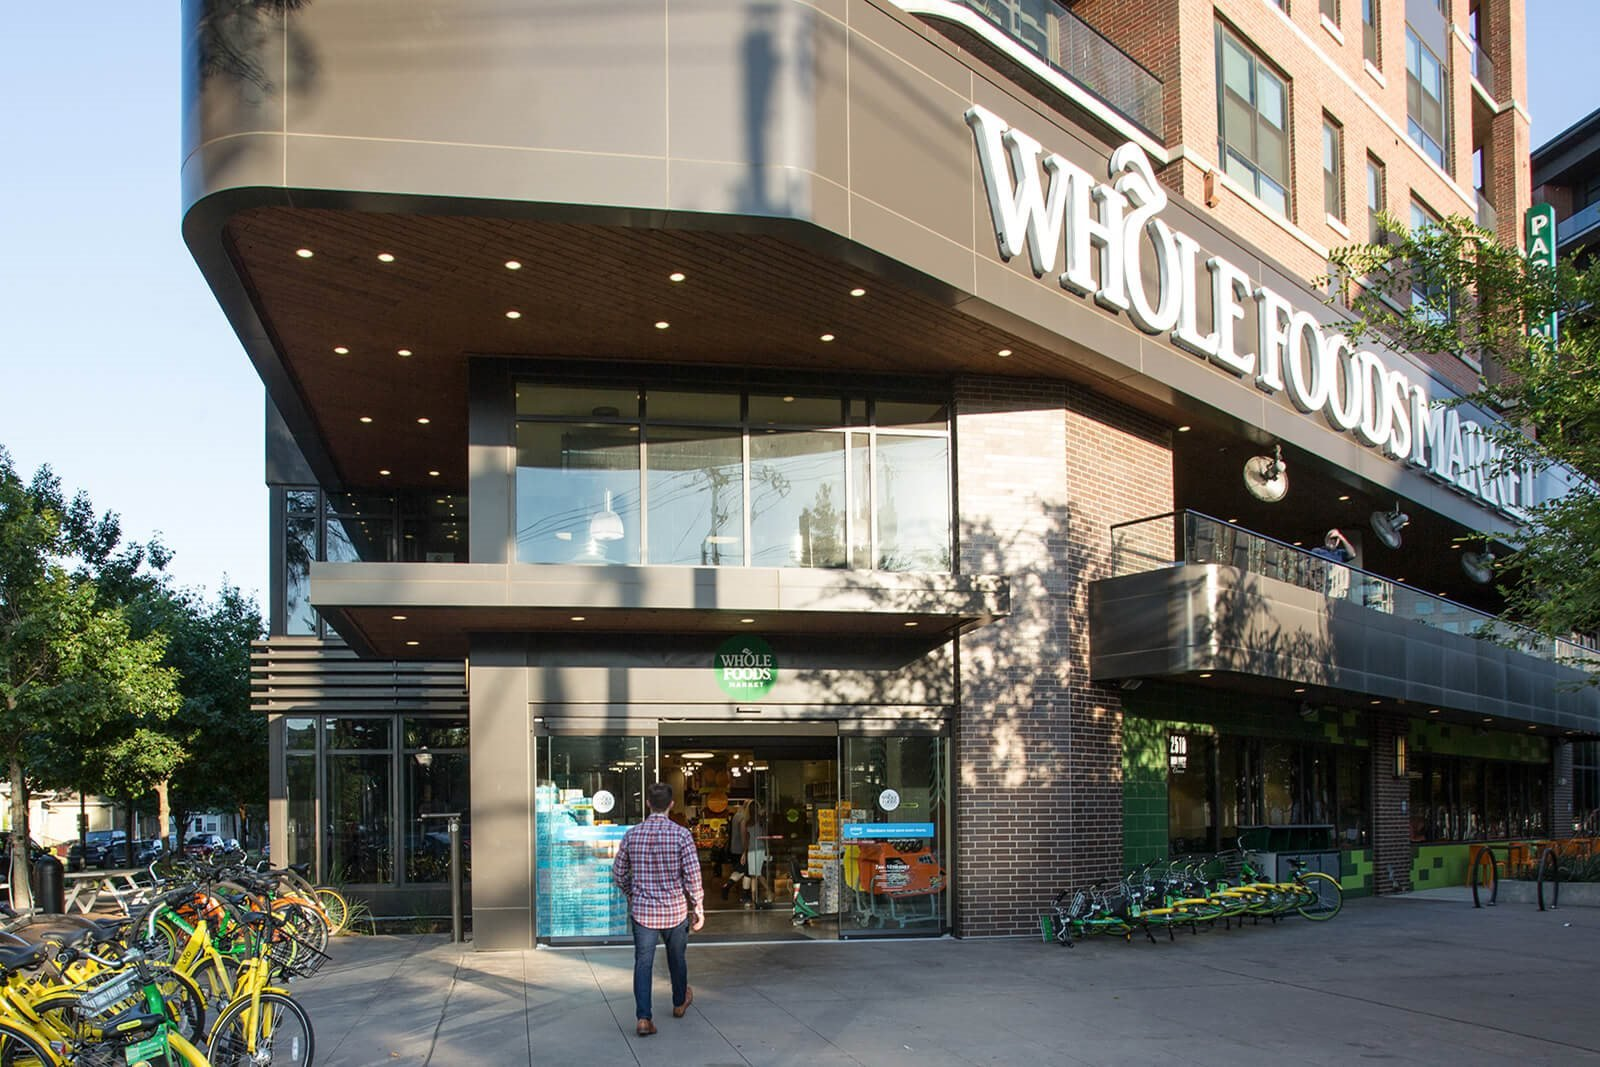 Whole foods is Nearby at The Jordan by Windsor, Dallas, Texas